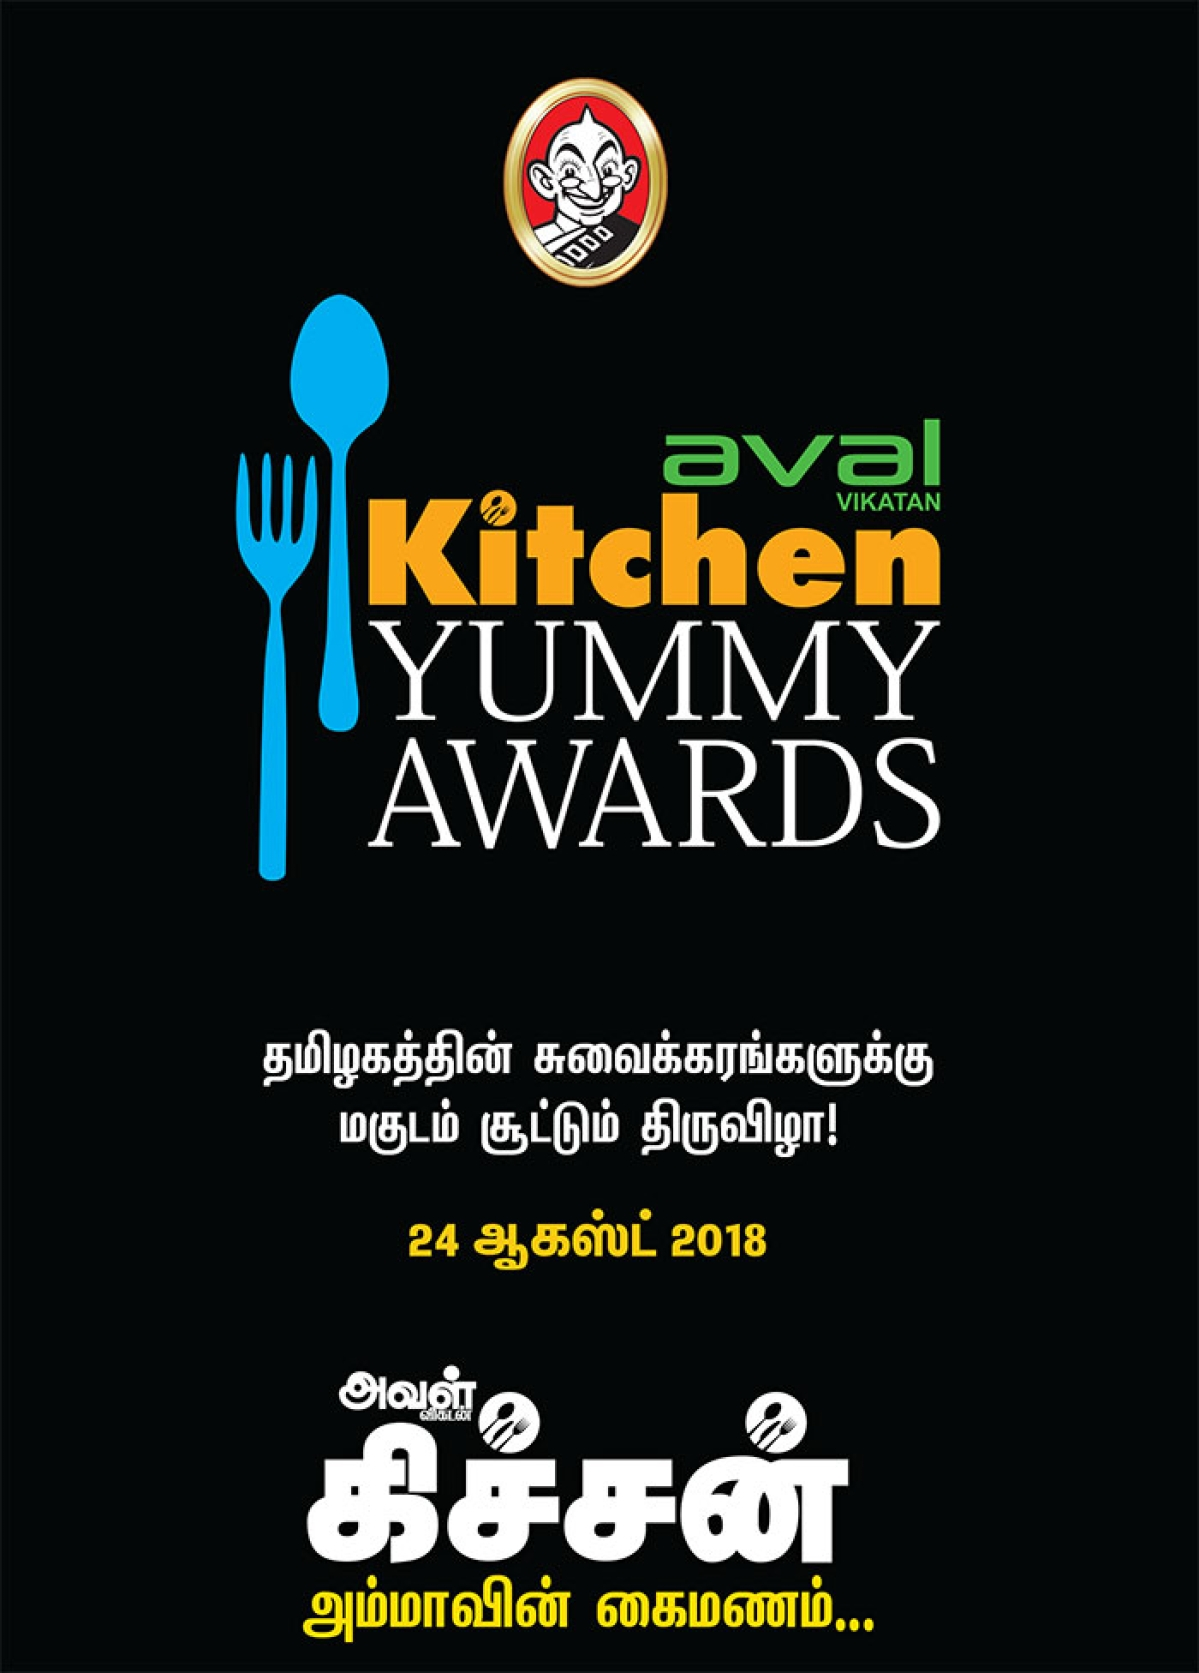 Aval Vikatan Kitchen YUMMY AWARDS 2018